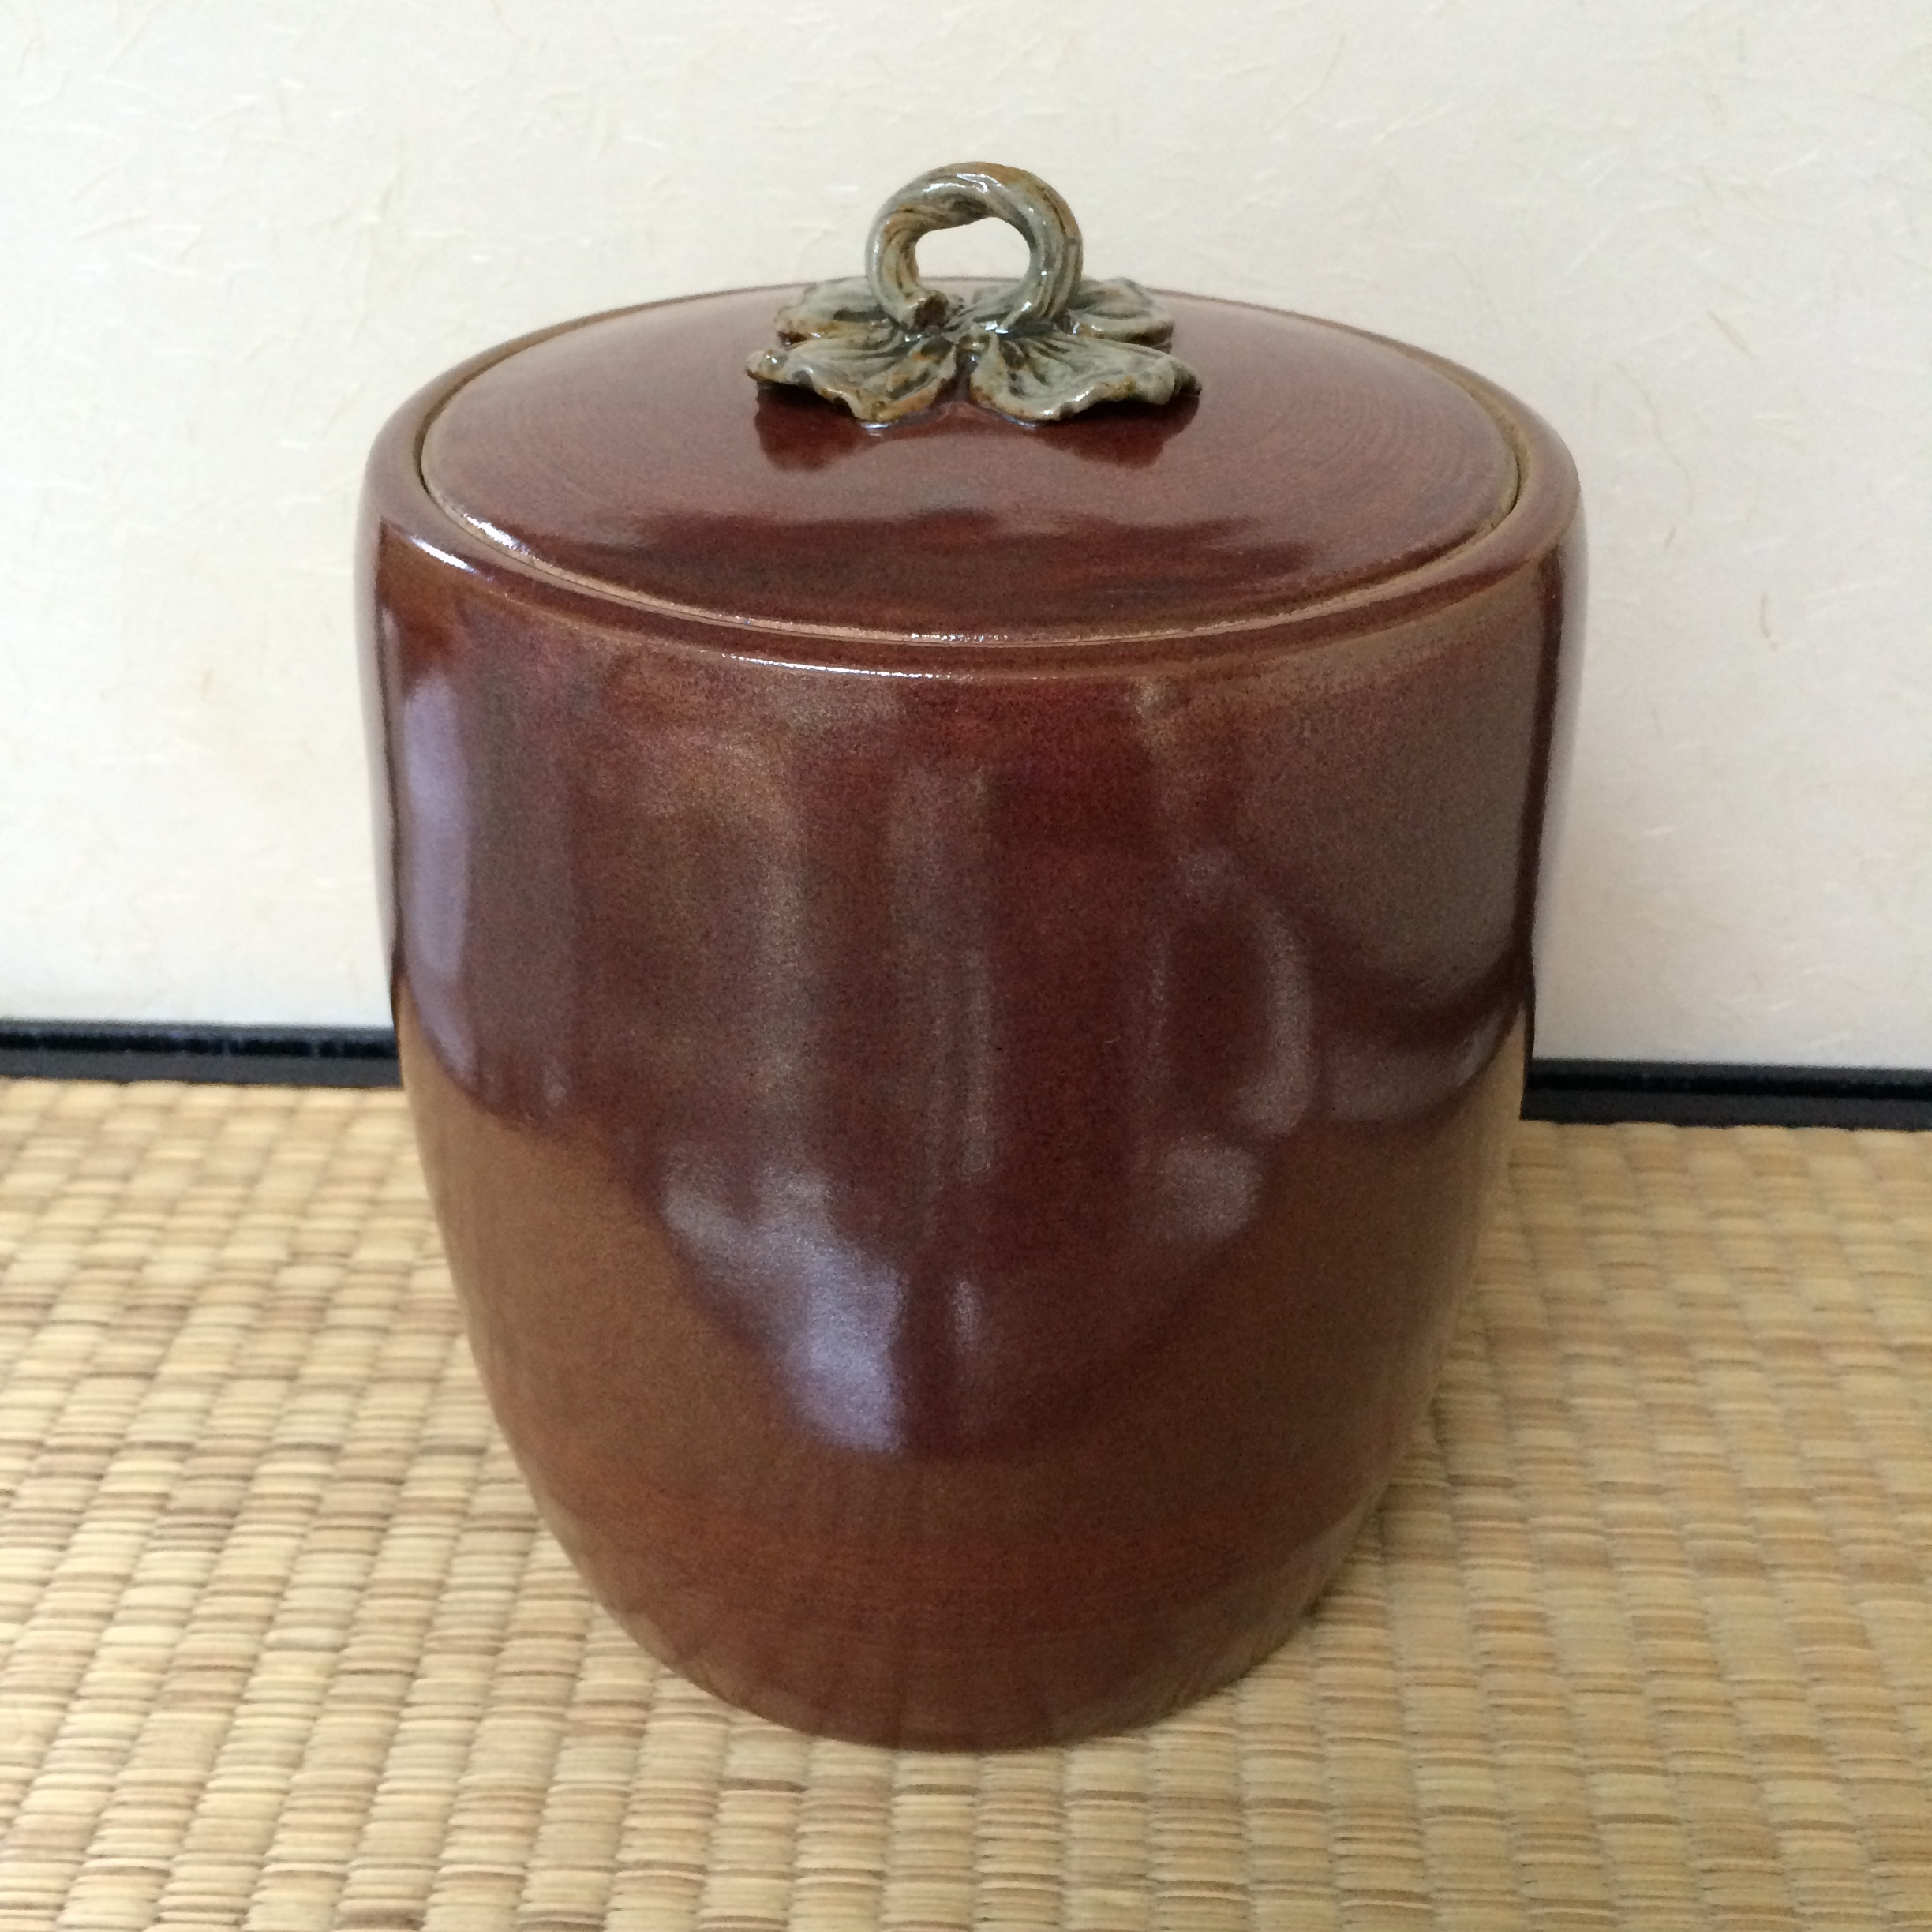 Mizusashi, water jar for Japanese tea ceremony - high fire stoneware